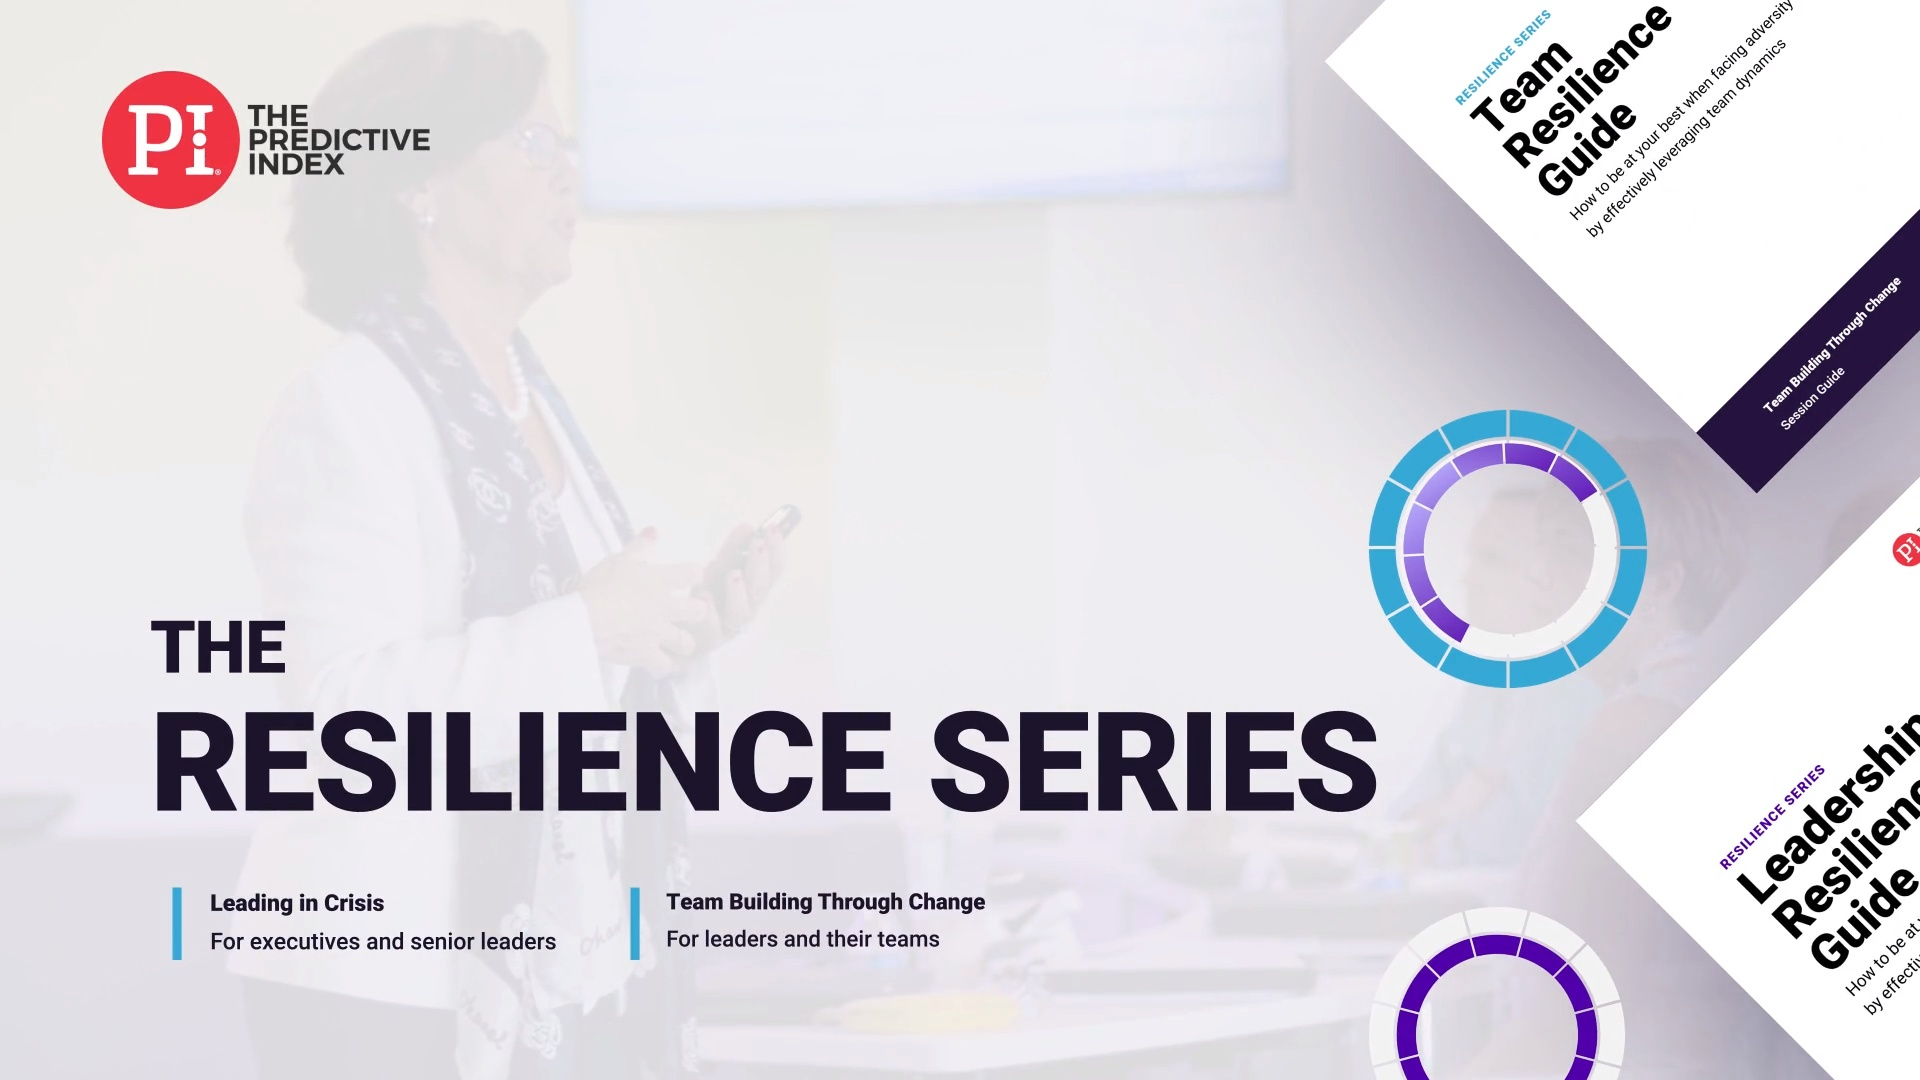 The Resilience Series